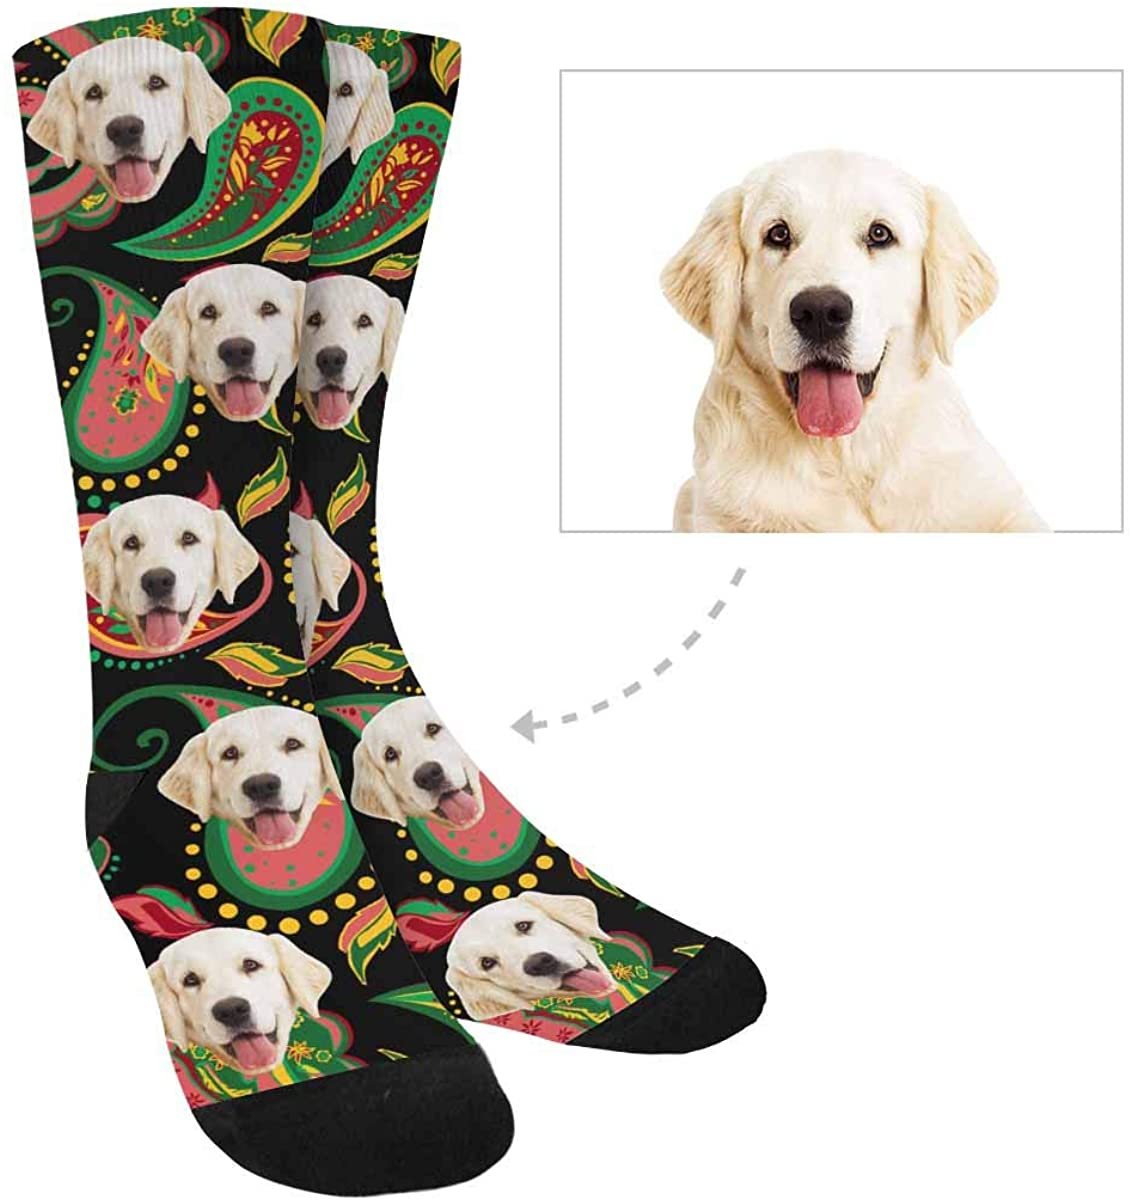 Custom Print Face Socks, Personalized Paisley Socks for Women Men